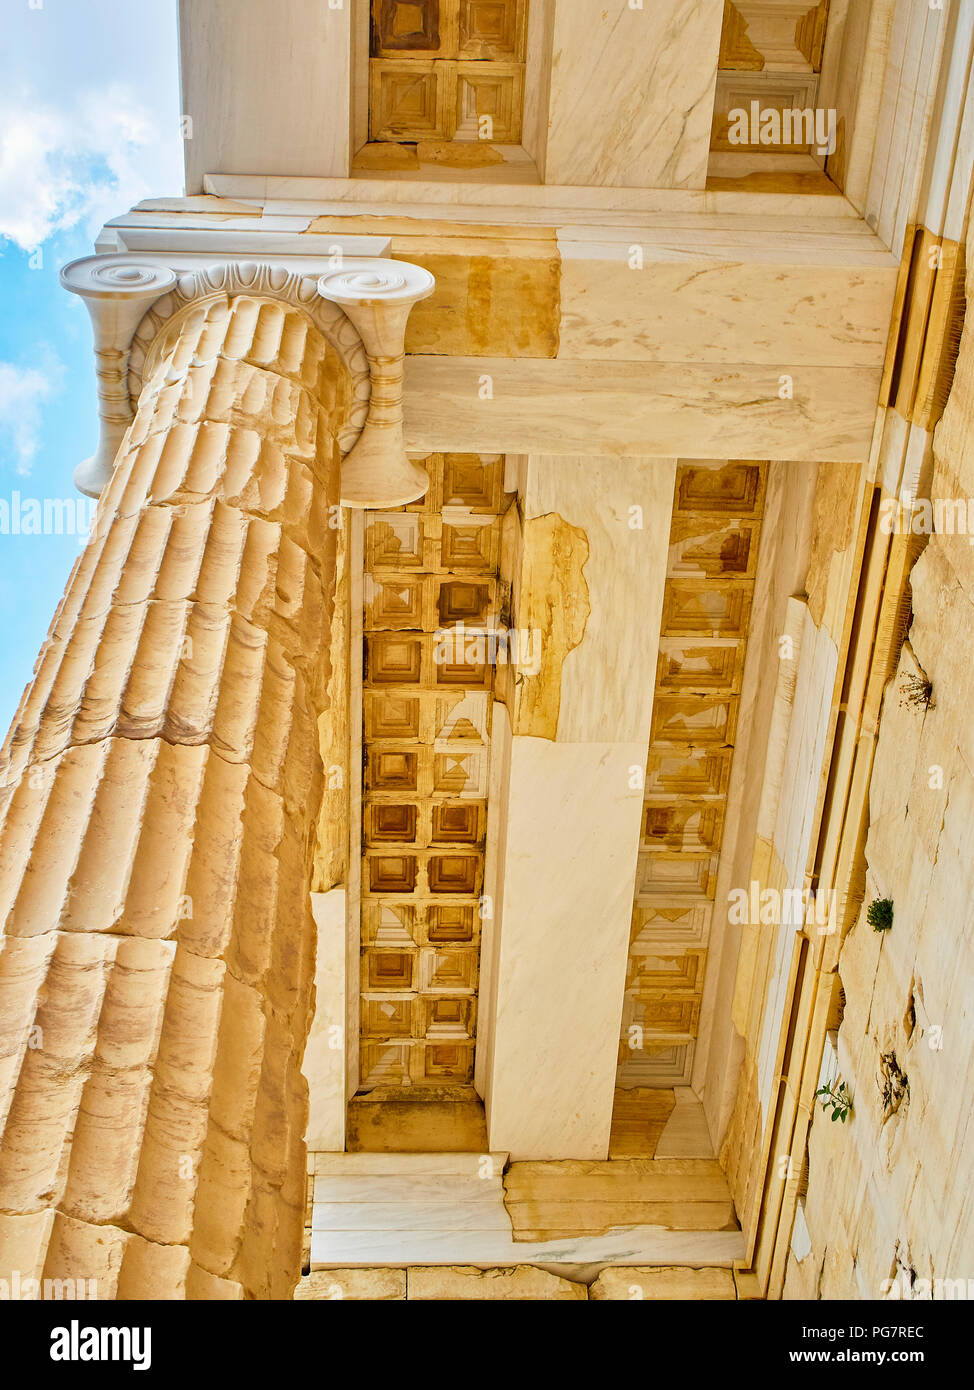 Doric column and restored architrave detail of eastern facade of Propylaea, the ancient gateway to the Athenian Acropolis. Athens. Attica, Greece. - Stock Image